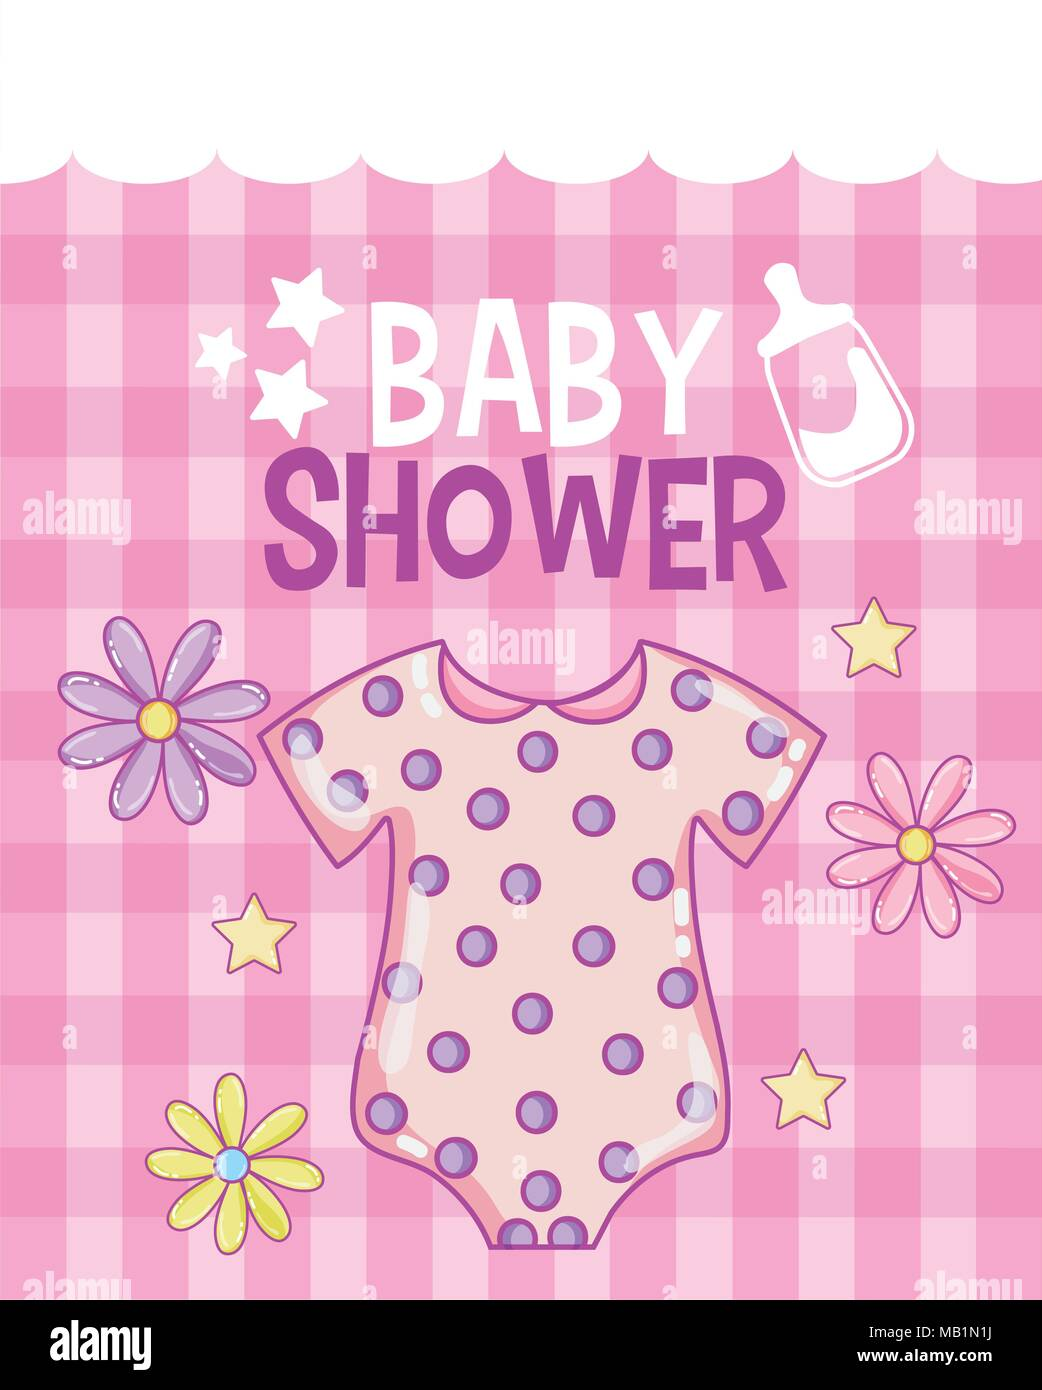 Baby shower card - Stock Image